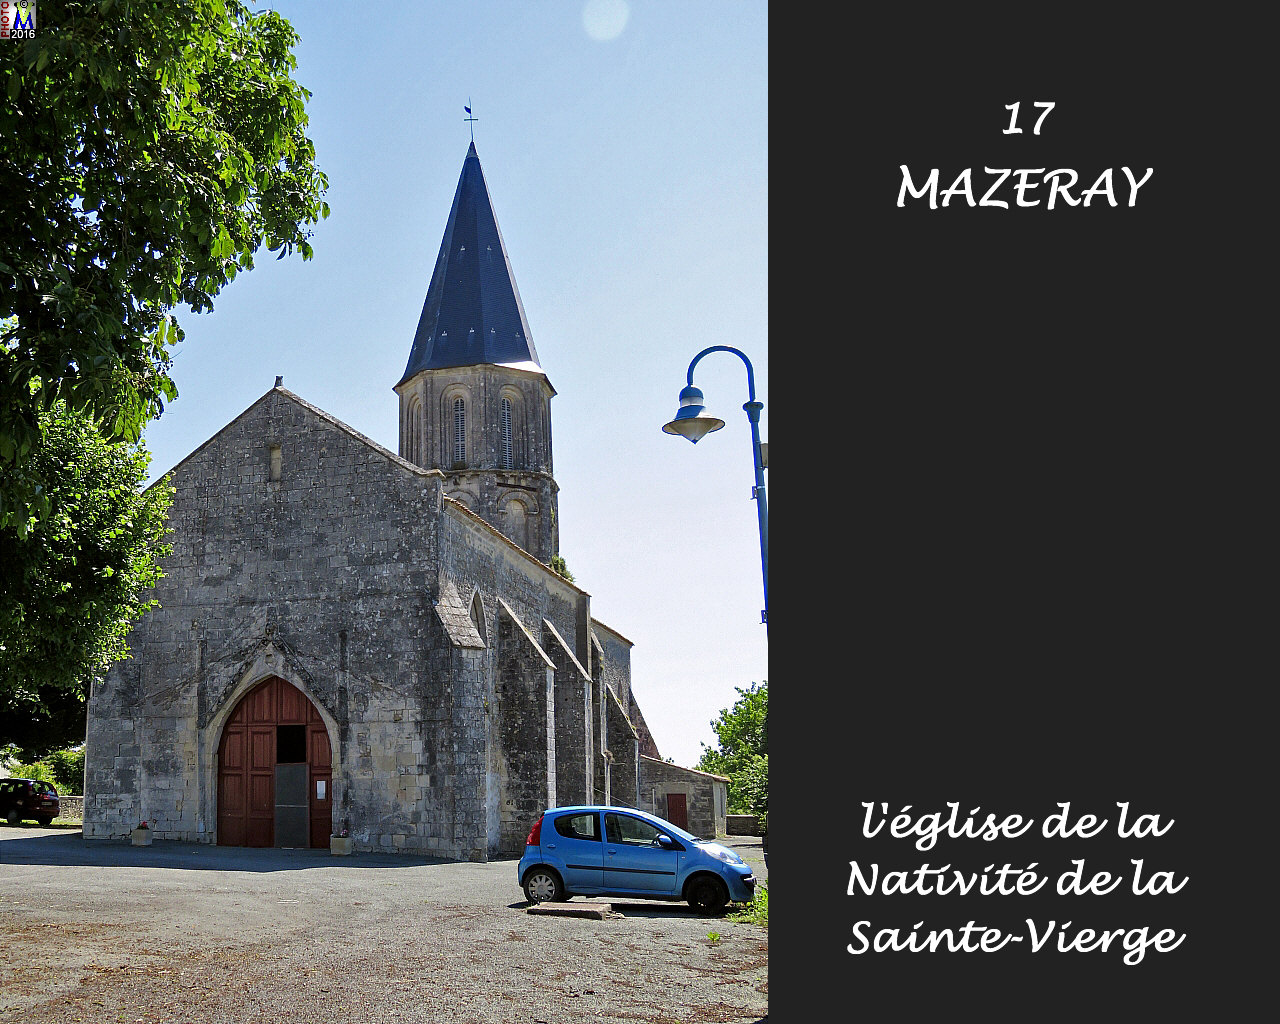 17MAZERAY_eglise_1000.jpg